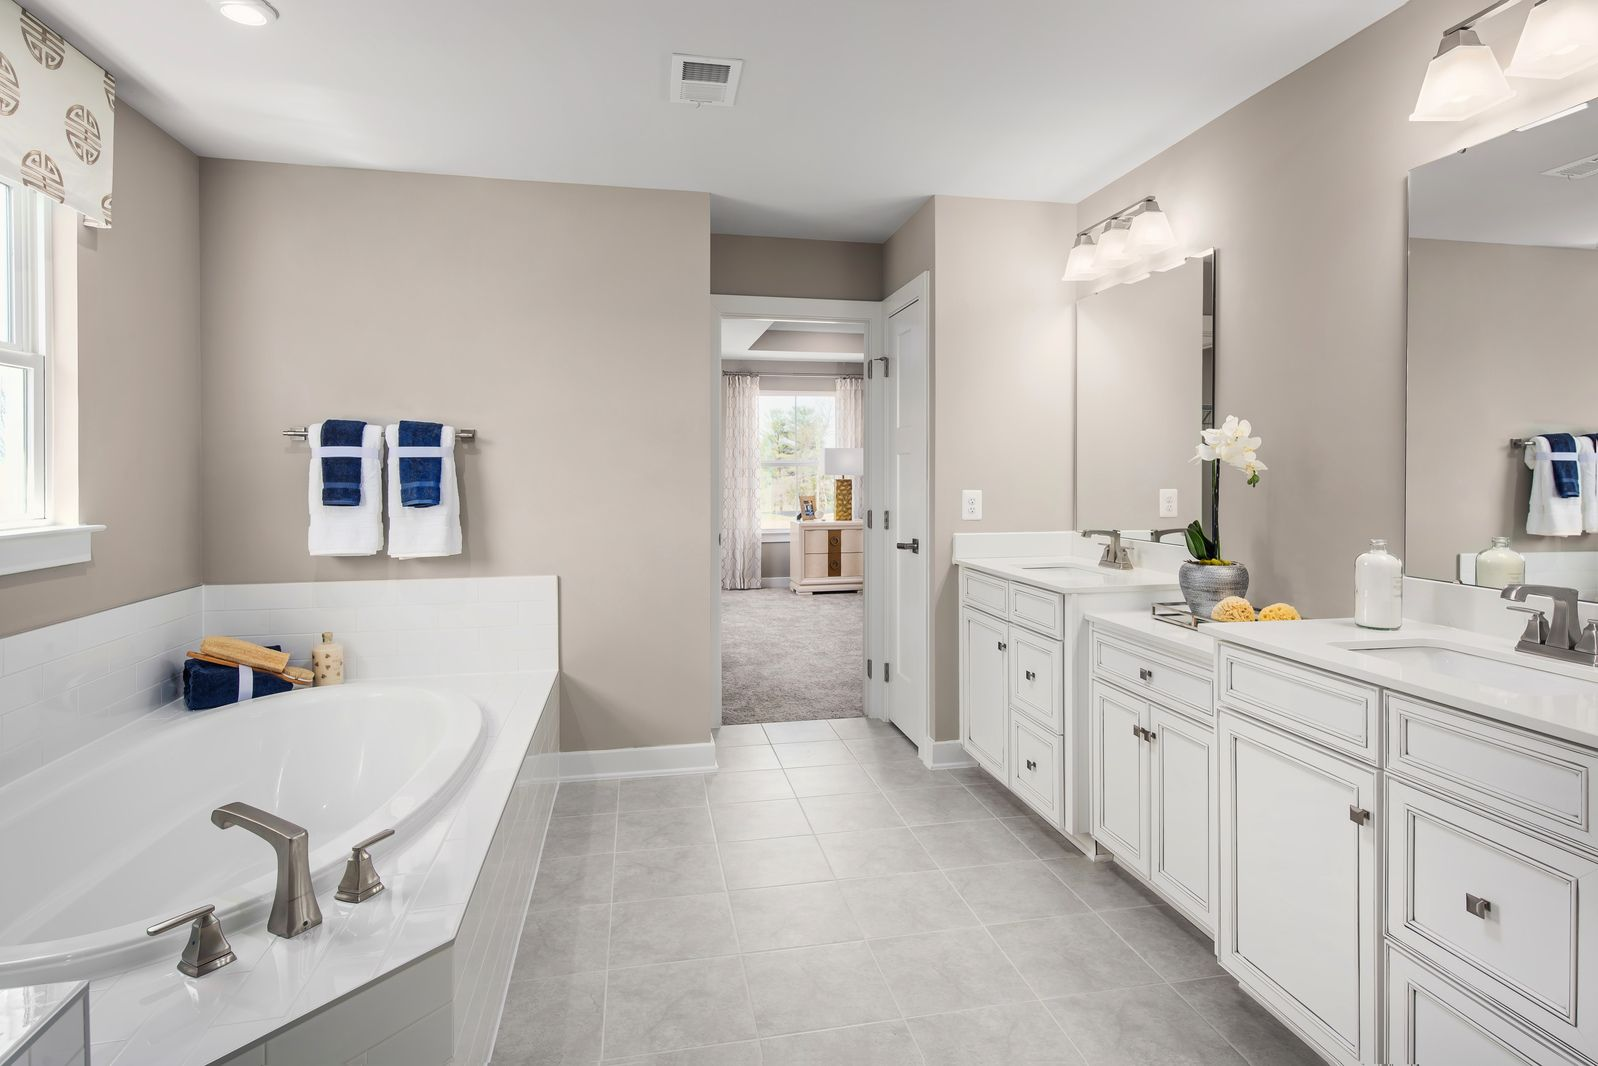 Bathroom featured in the Corsica By Ryan Homes in Washington, VA